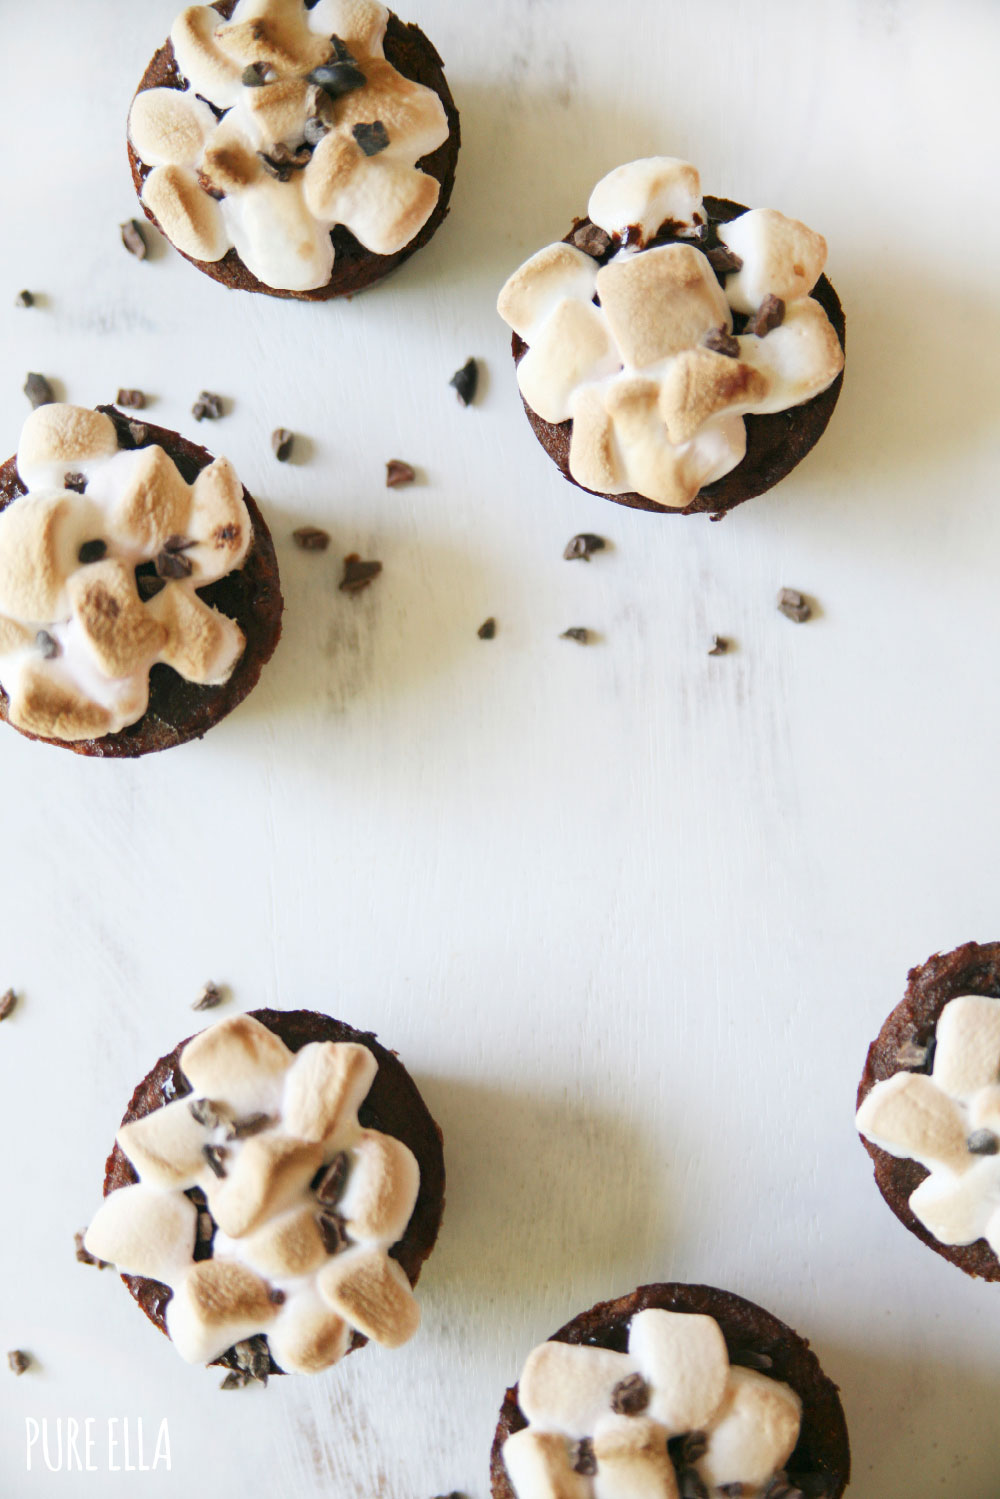 Pure-Ella-Marshmallow-Topped-Gluten-free-Vegan-Brownie-Cups3